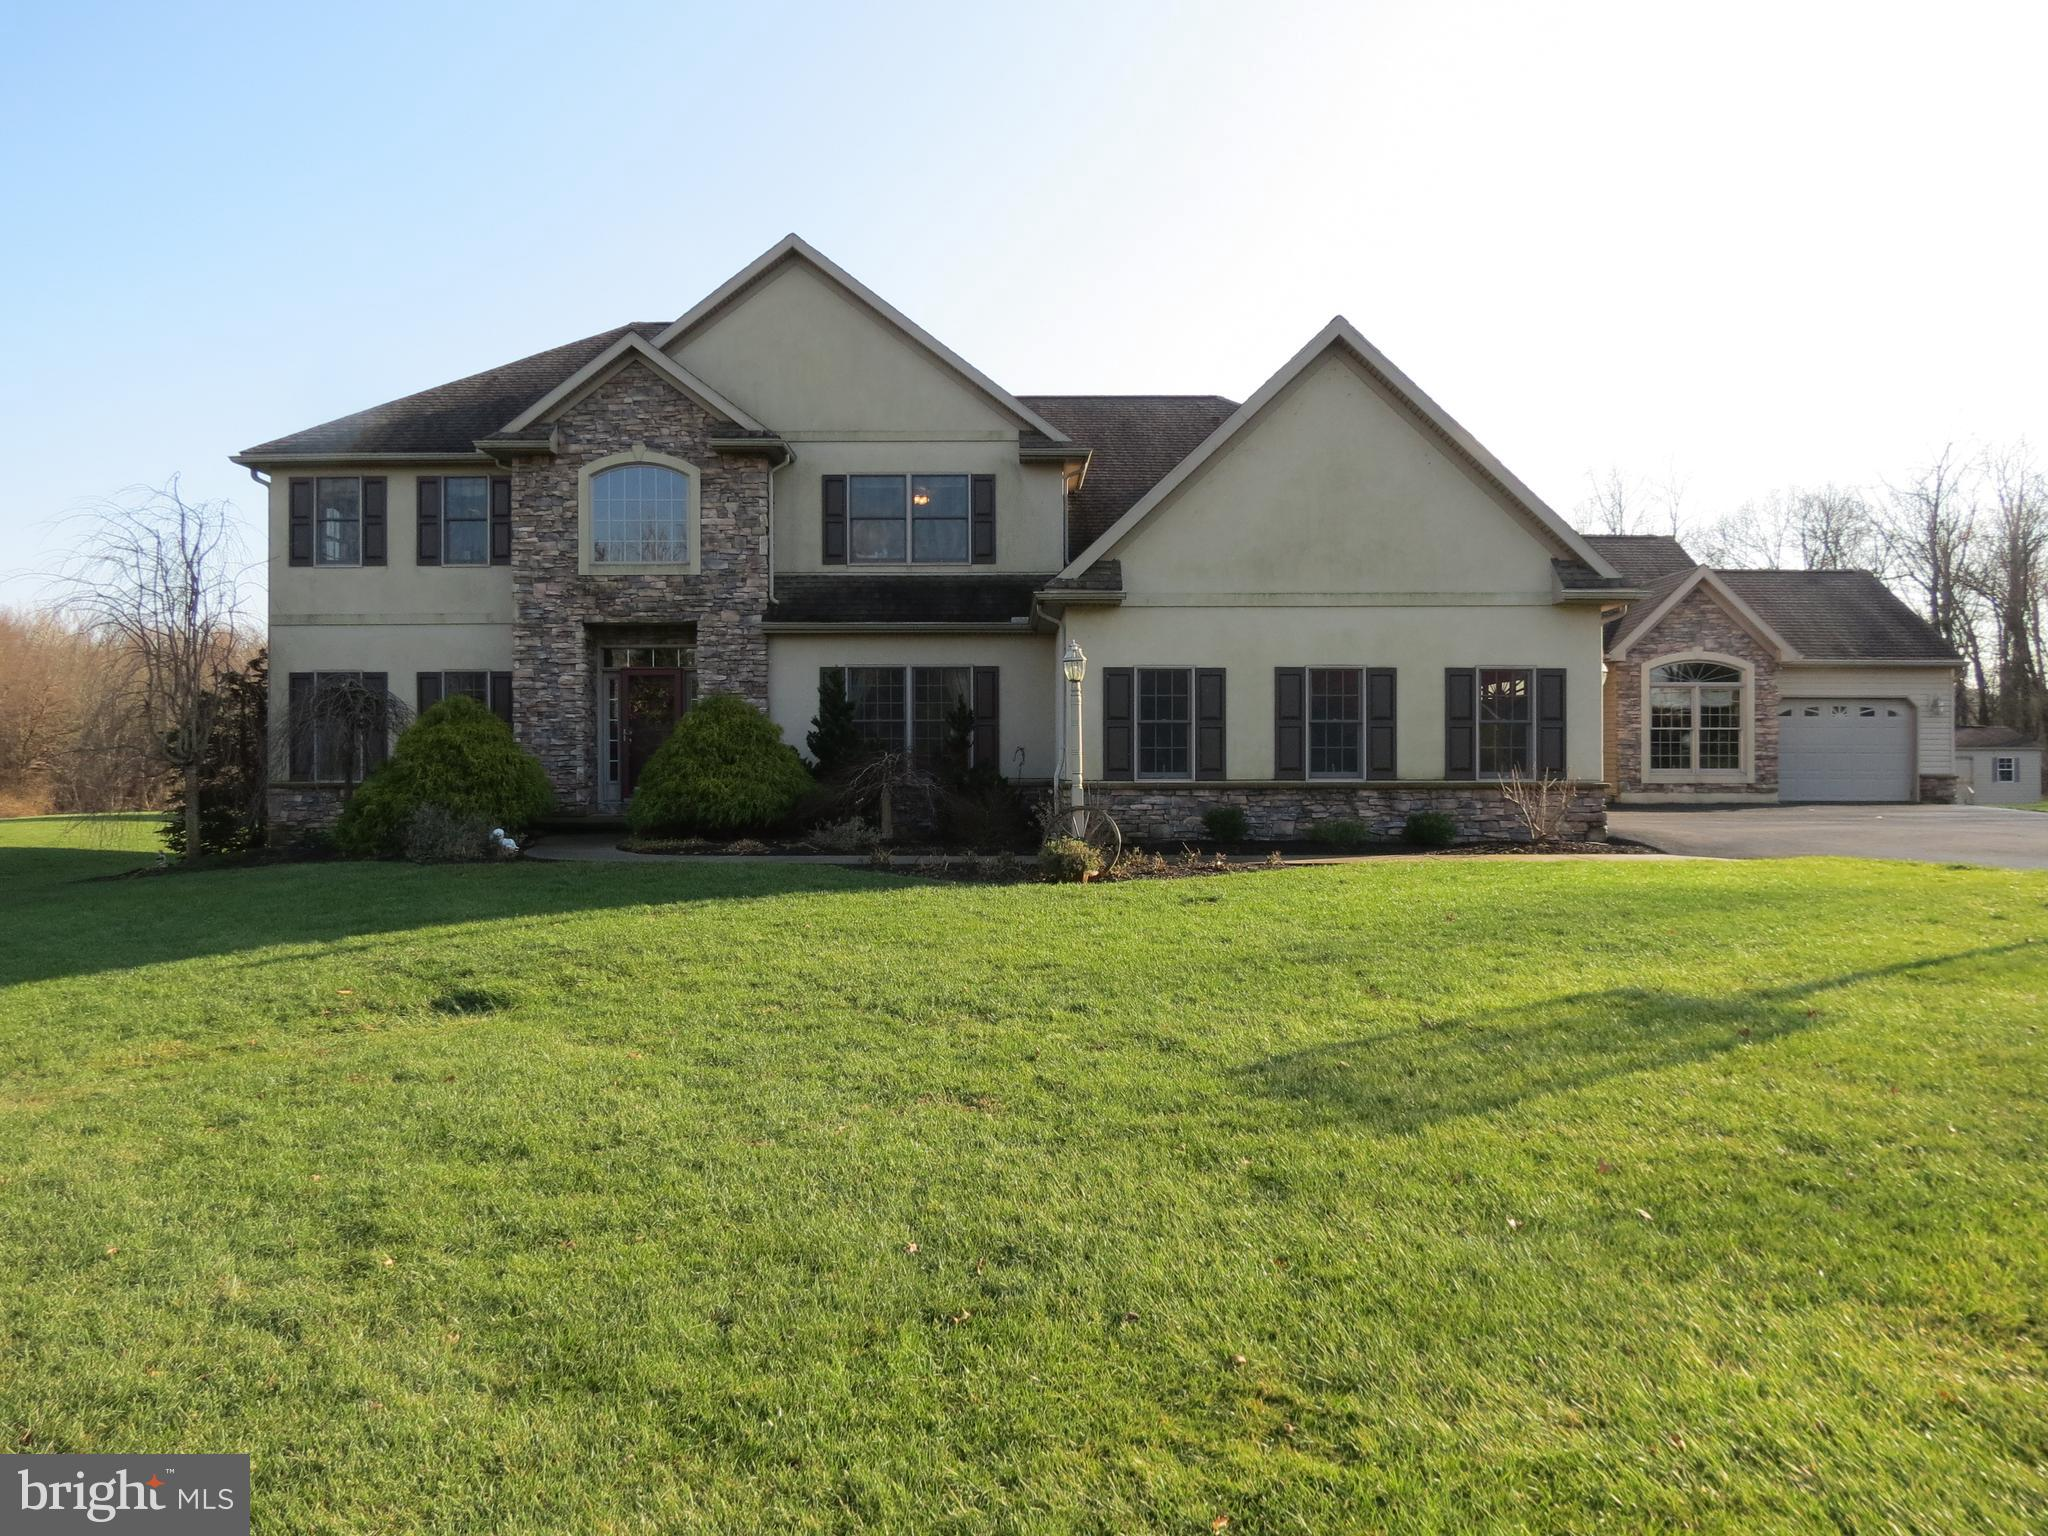 670 E CANAL ROAD, HERSHEY, PA 17033